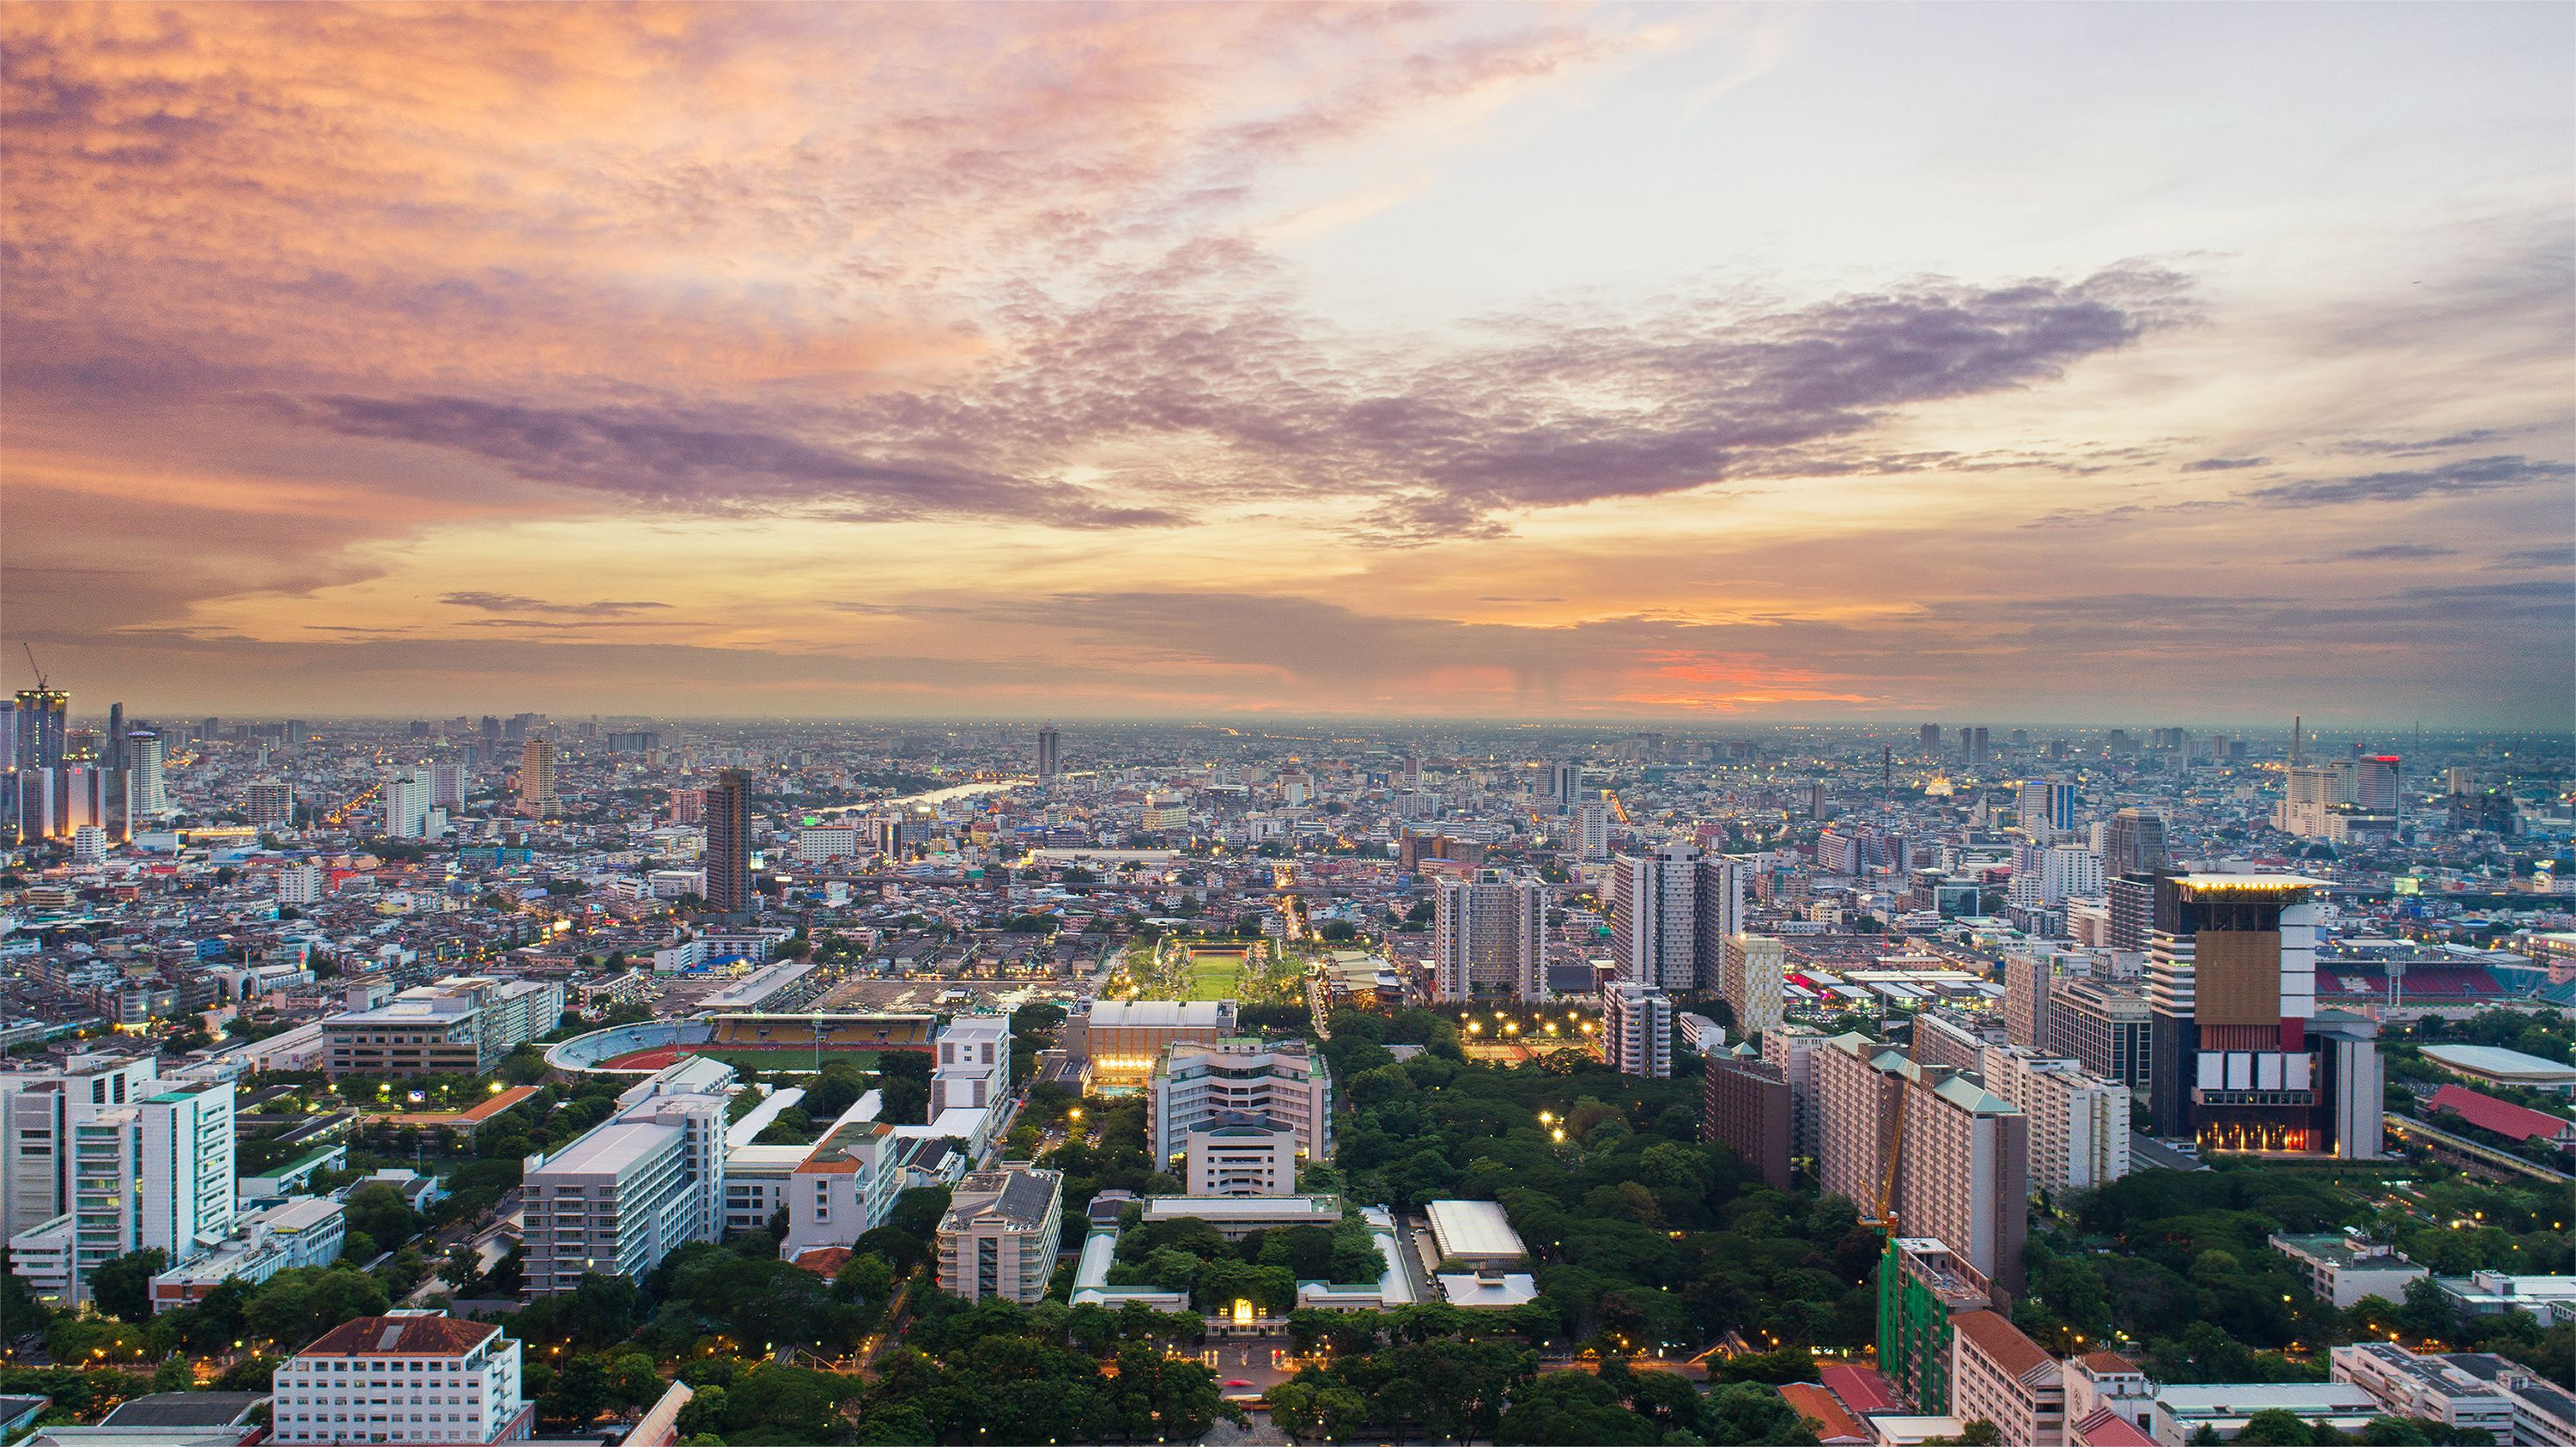 Bangkok city downtown with sunset sky ,Bangkok is the most populated city in Southeast Asia